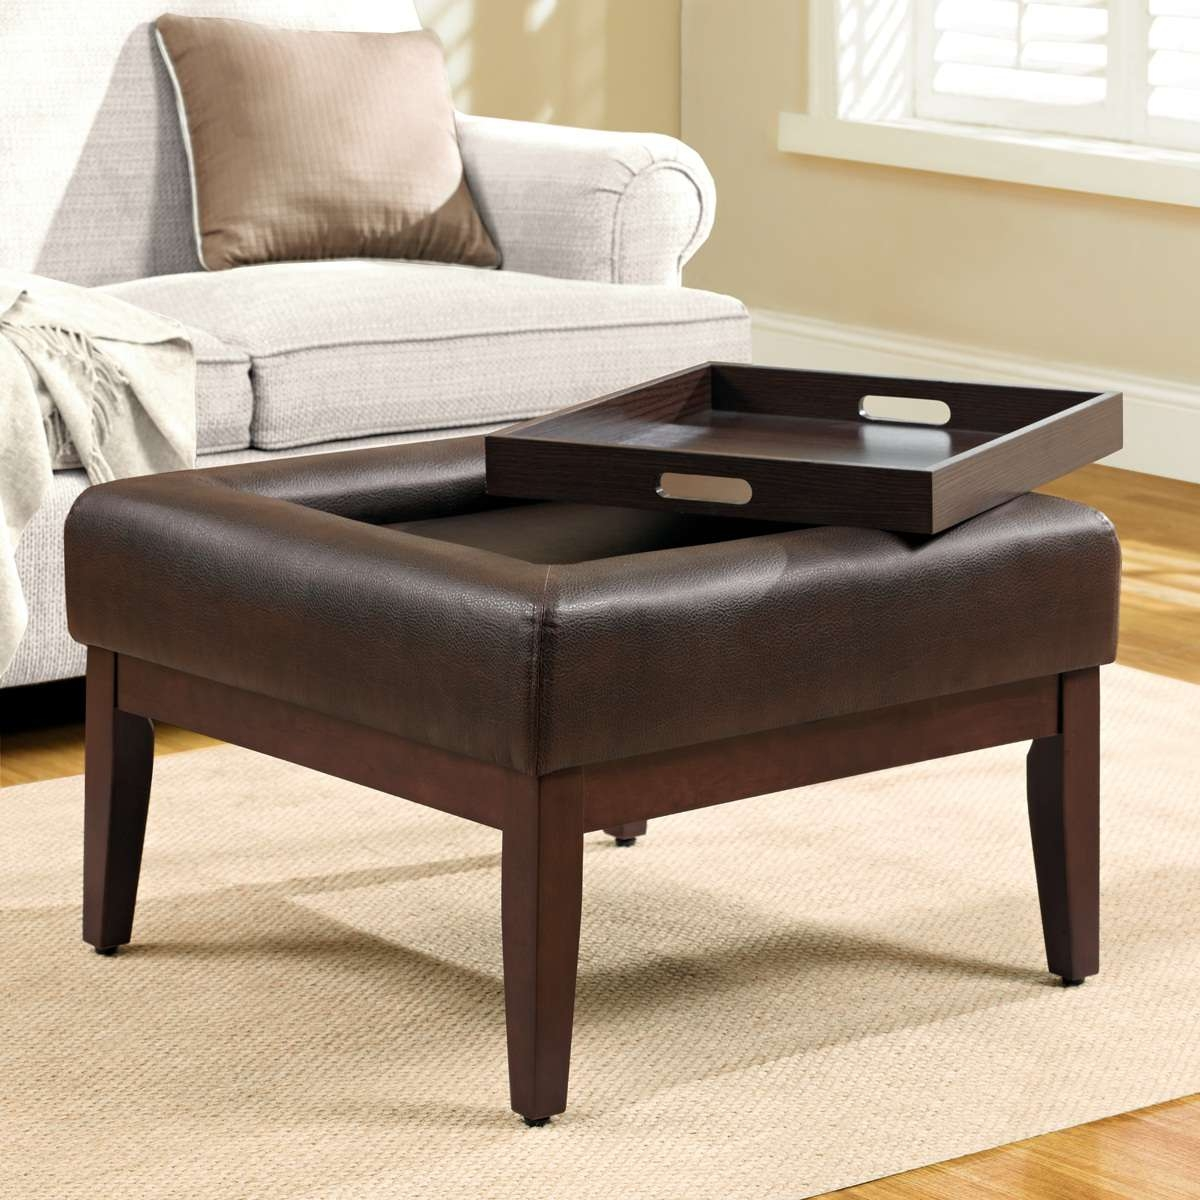 Well Known Brown Leather Ottoman Coffee Tables With Regard To Simple Black Ottoman Coffee Table Designs With Storage – Laredoreads (View 17 of 20)